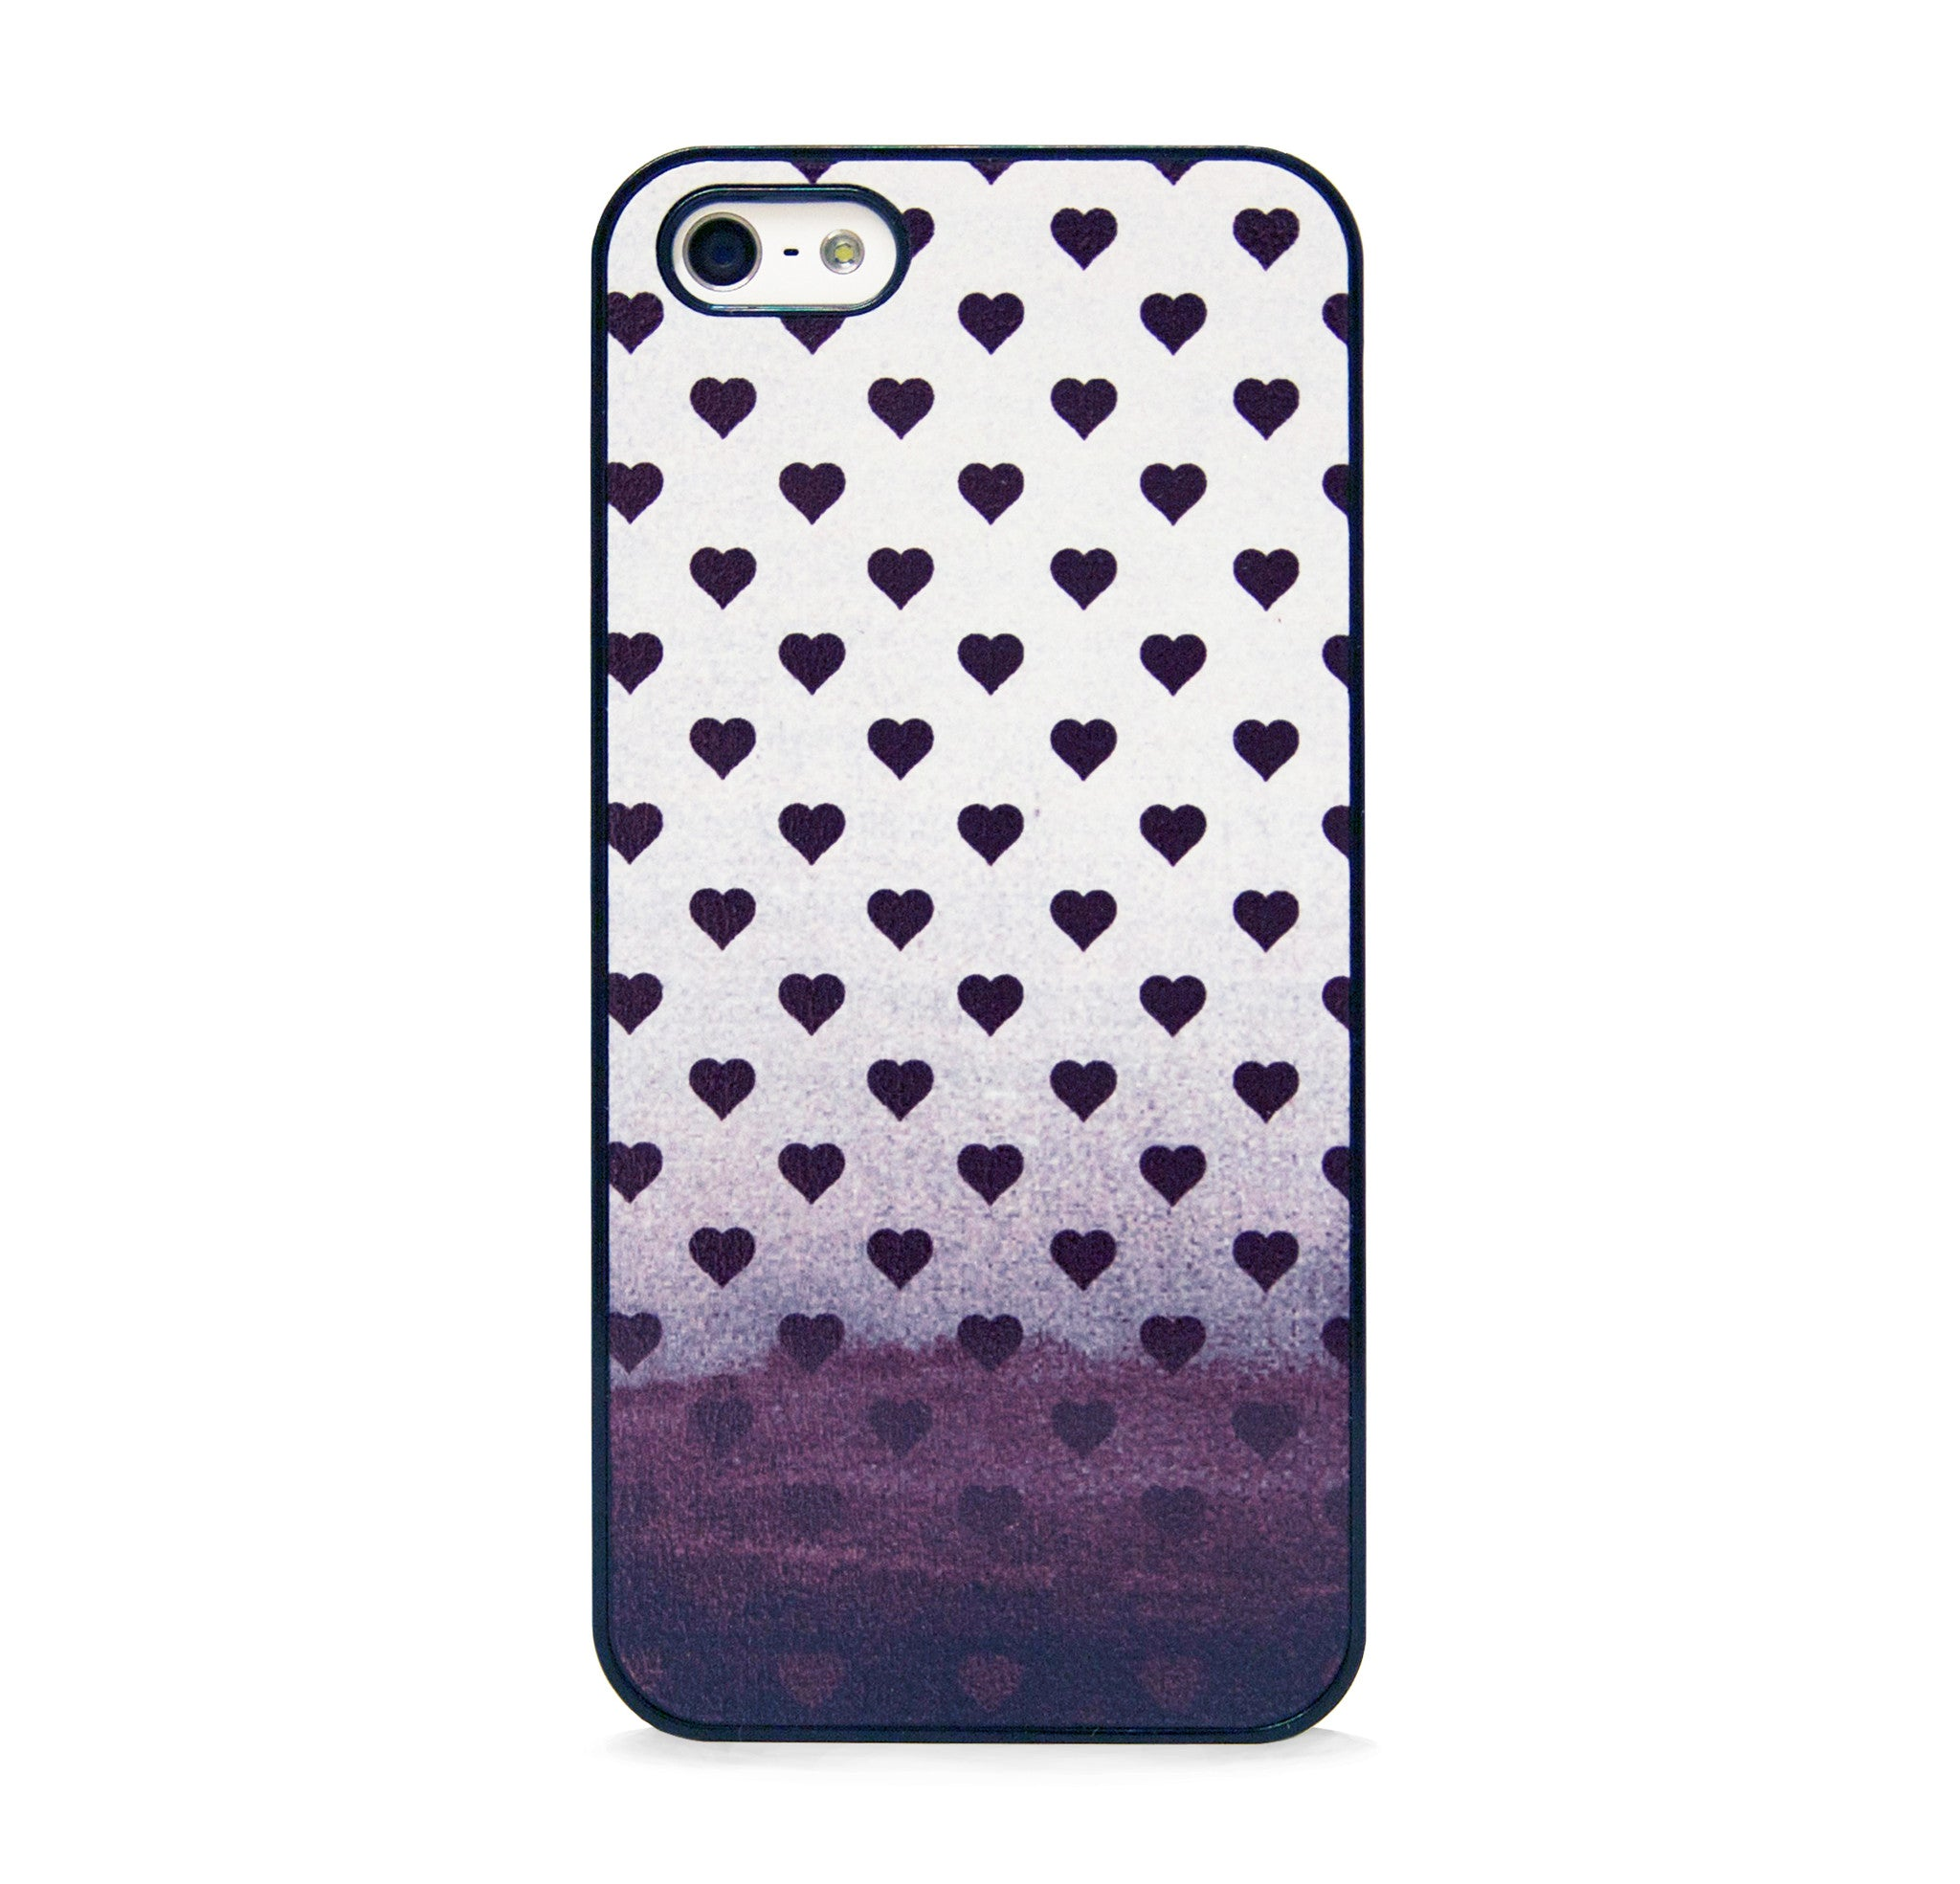 POLKA HEART BLACK FOR IPHONE 5/5S